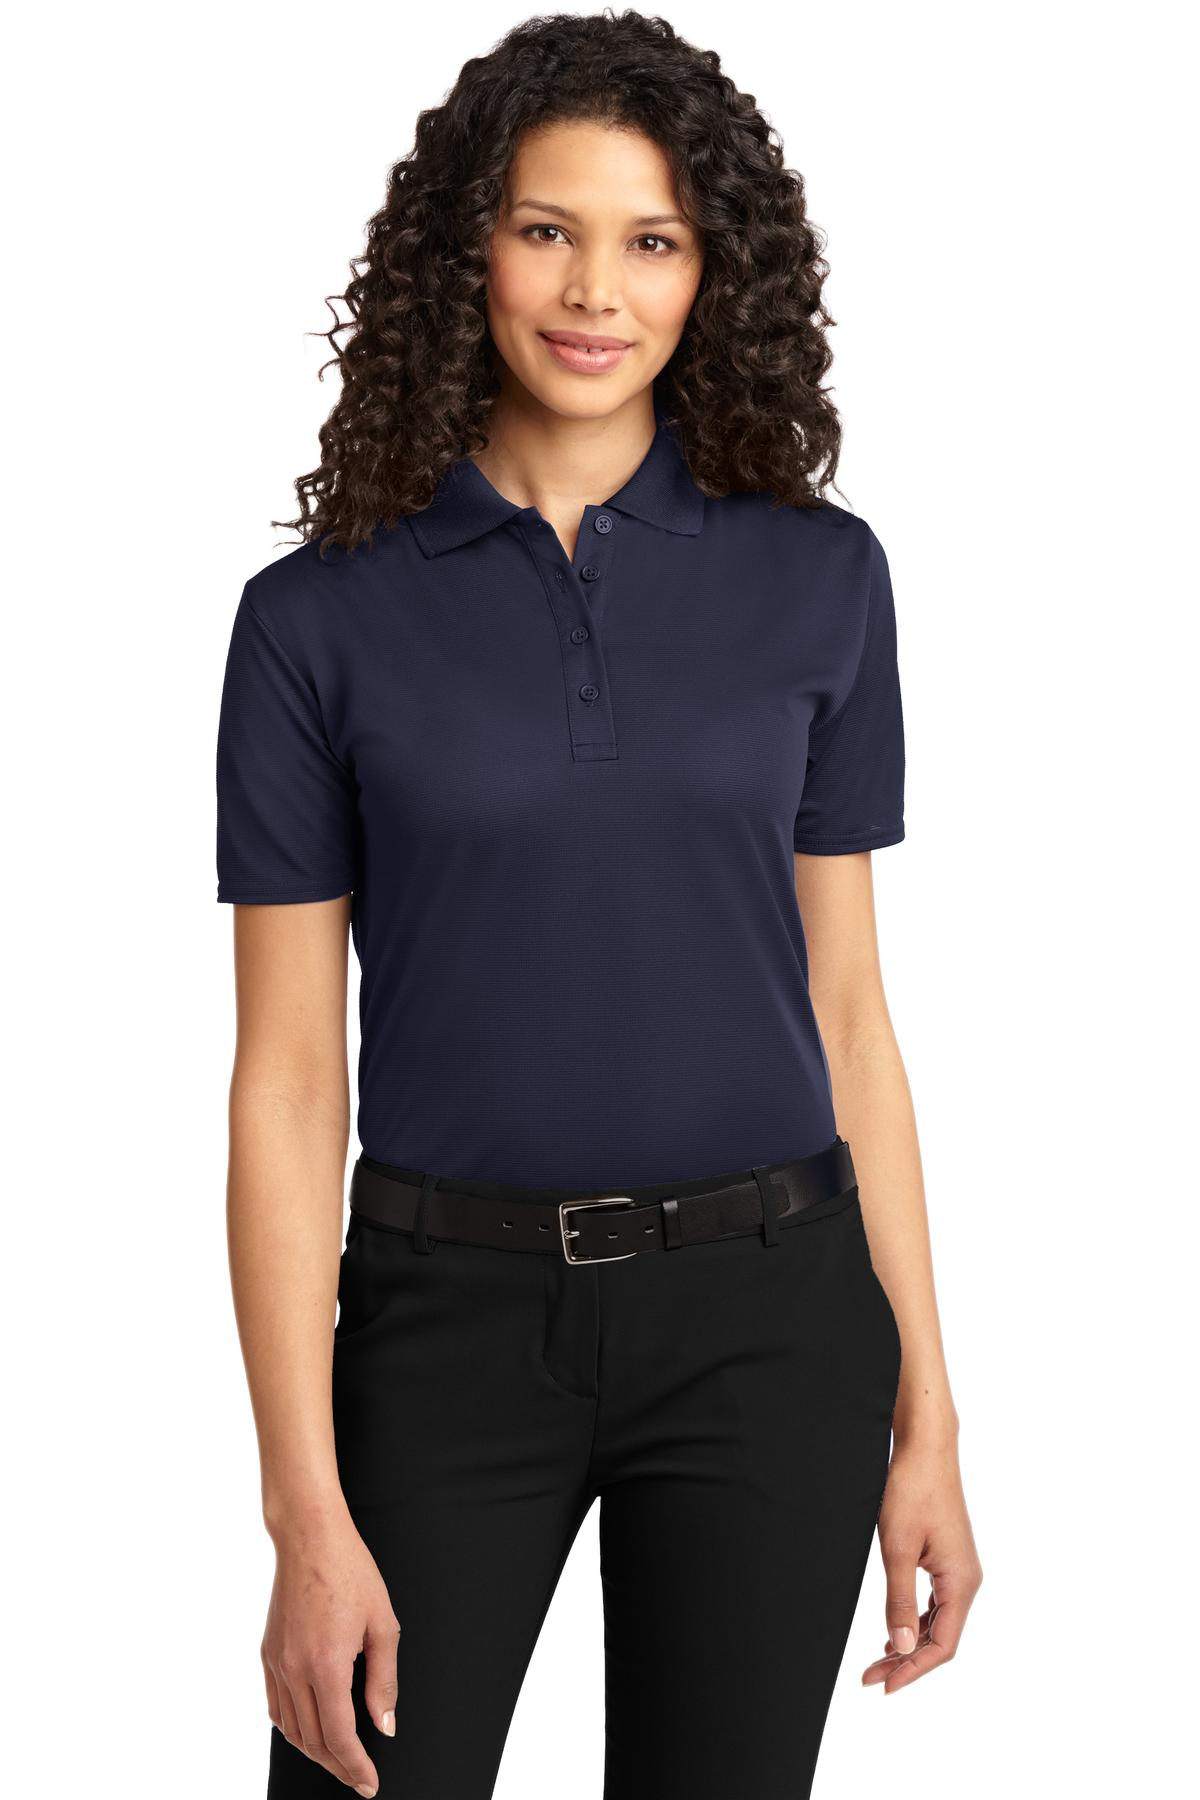 Neon Orange Port Authority Ladies Silk Touch Performance Polo.